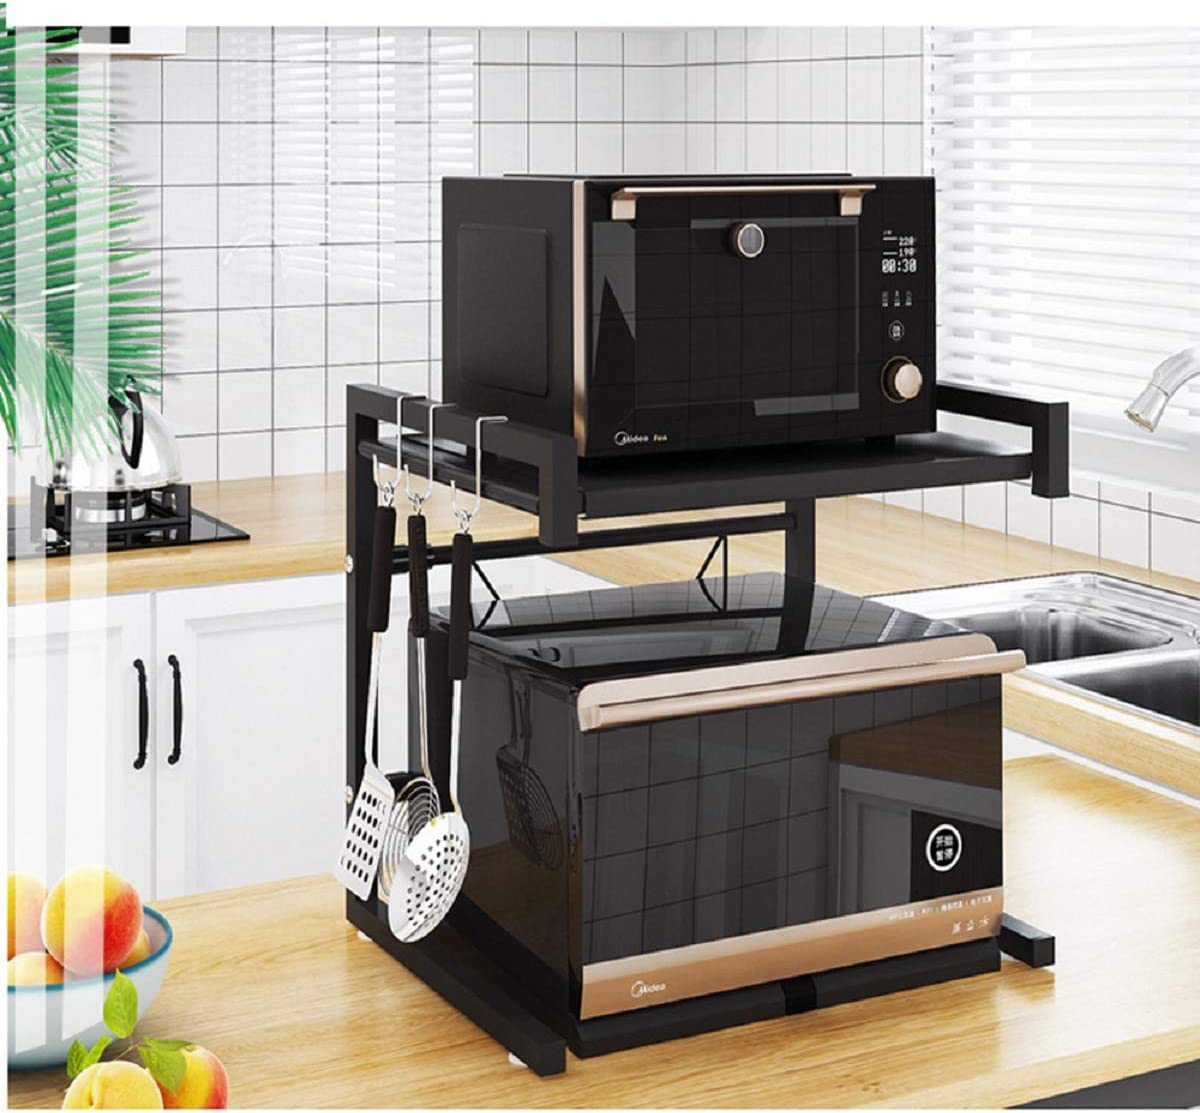 Amazon Com Metal Microwave Oven Rack Toaster Stand Shelf Expandable Kitchen Supplies Tableware Storage Counter Space Saver Cabinet Organizer Spice Holder With 3 Hooks 60lbs Weight Capacity Black Stainless Steel Kitchen Dining